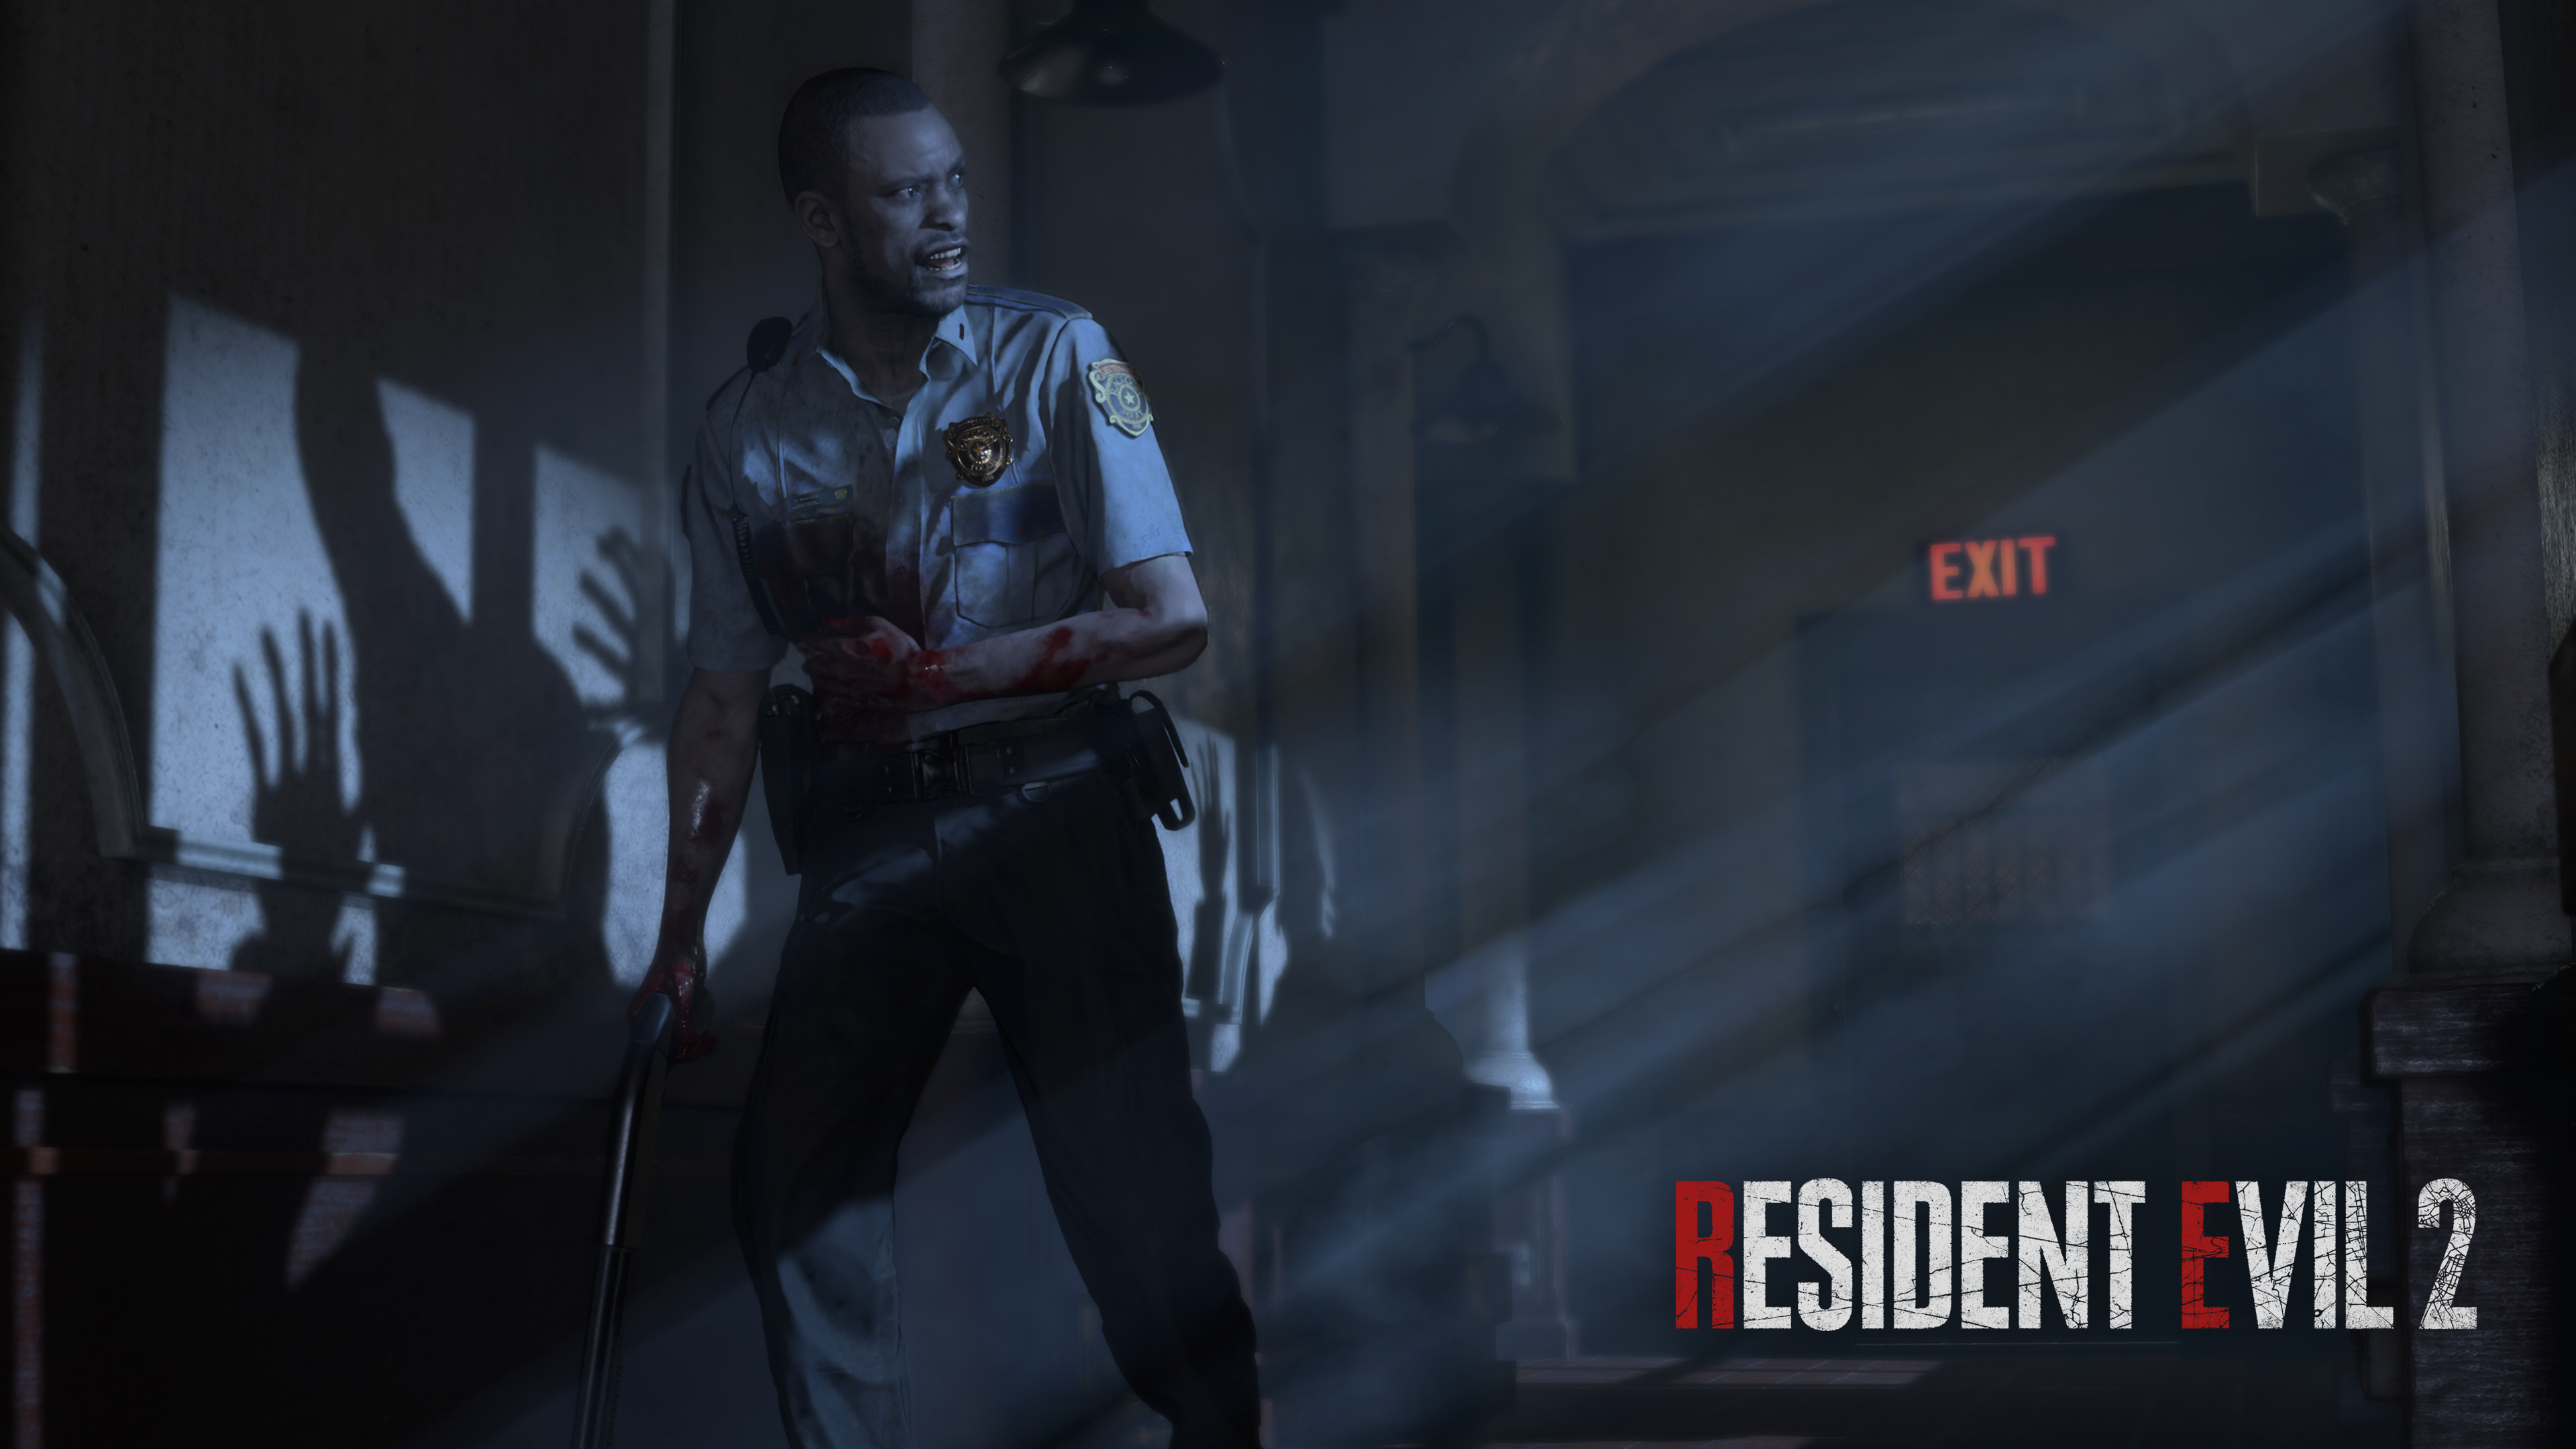 Resident Evil Ranking 10 Games From Worst To Best